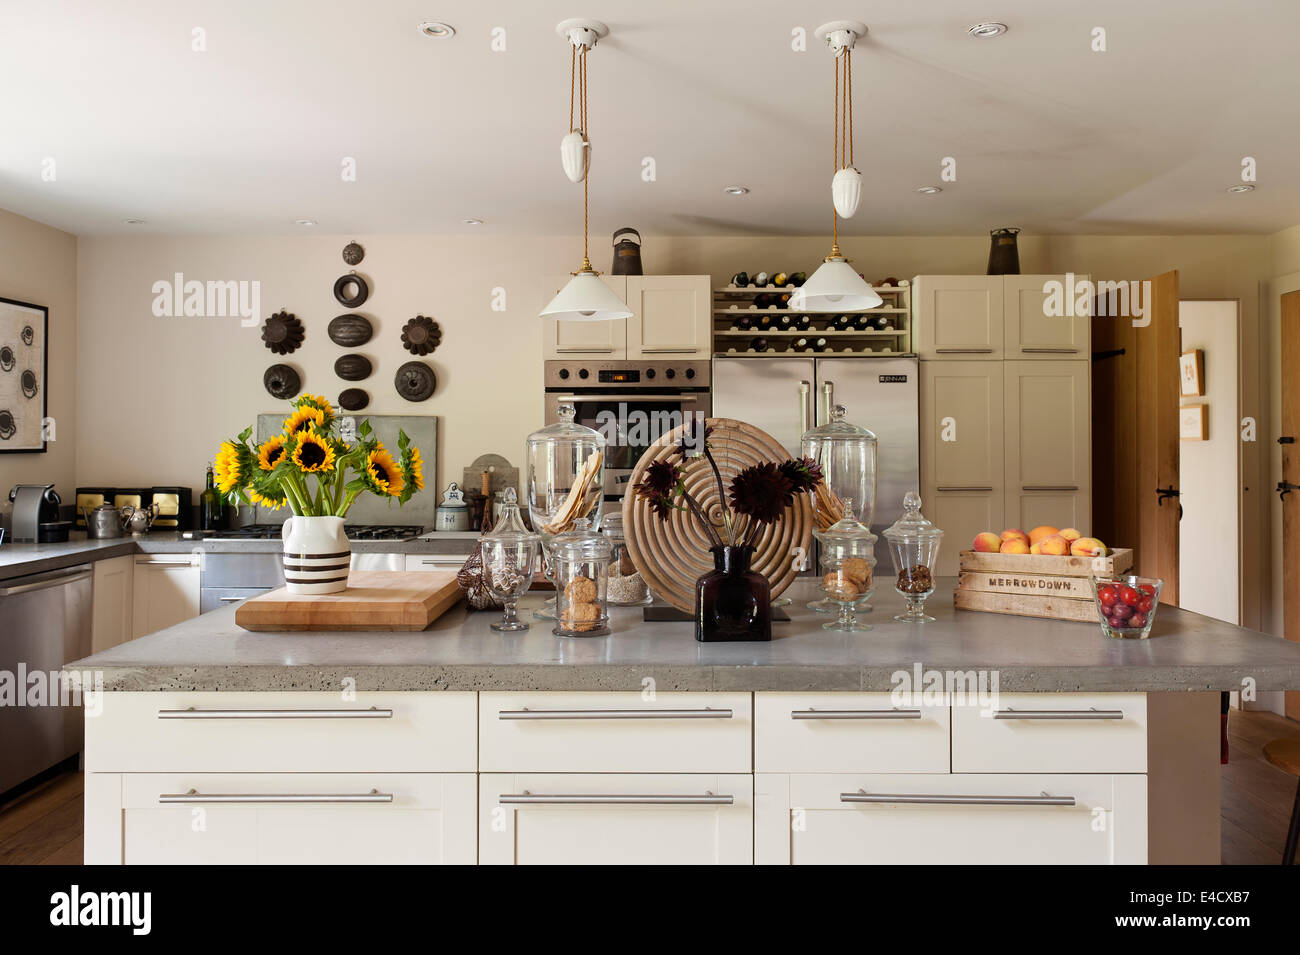 Concrete worktops in a kitchen with french pendant lights stock concrete worktops in a kitchen with french pendant lights aloadofball Gallery